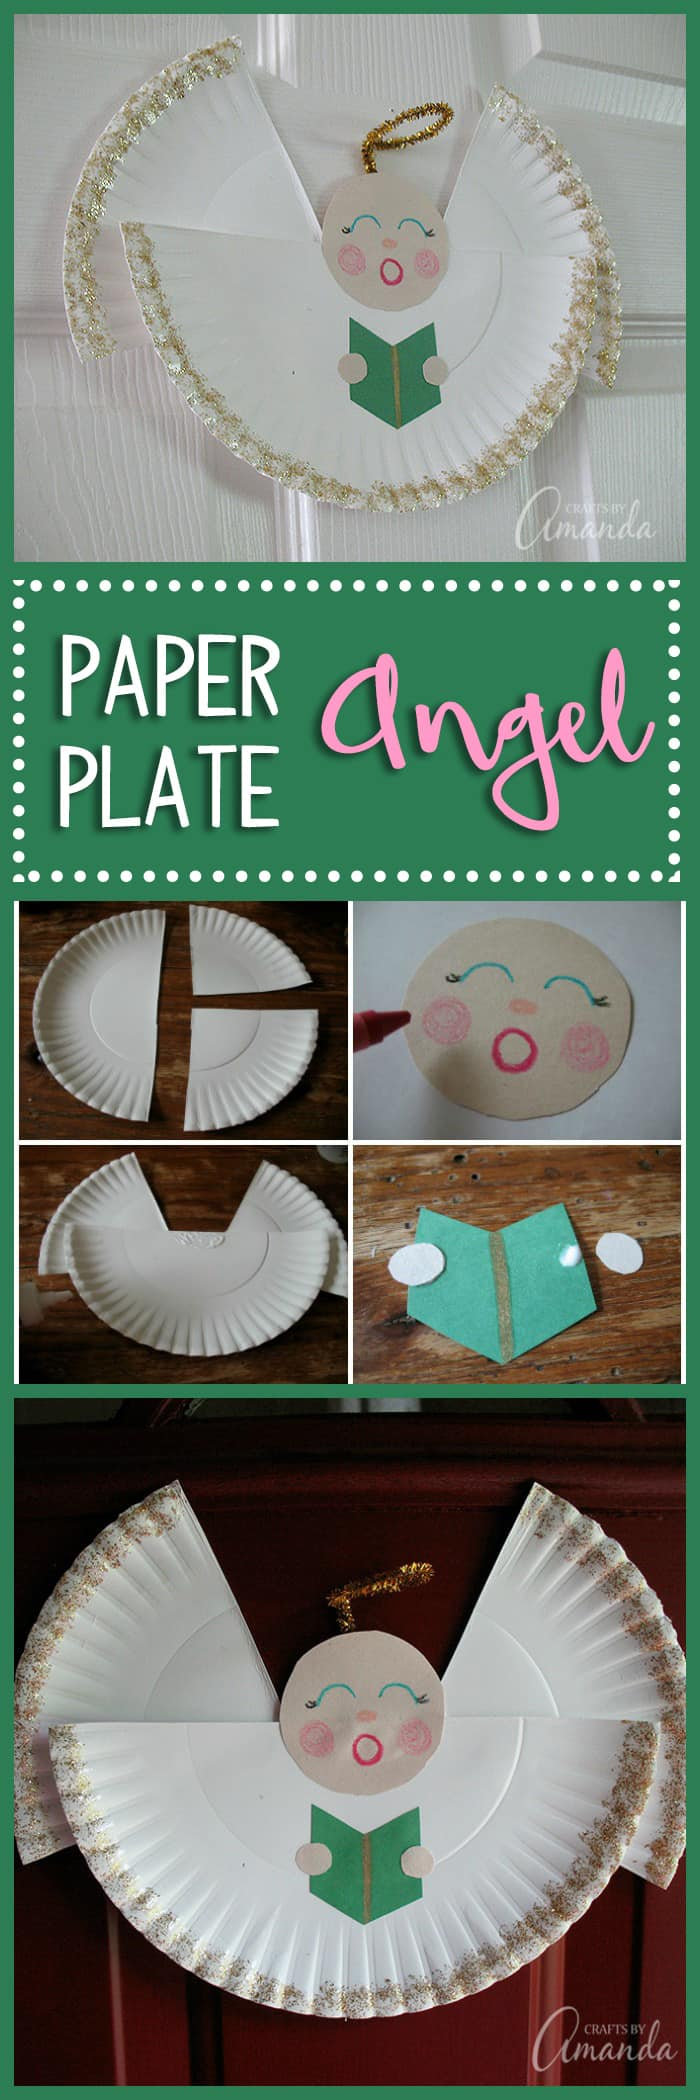 Paper Plate Angel - learn how to make a pretty angel from a paper plate, a fun Christmas craft for kids!